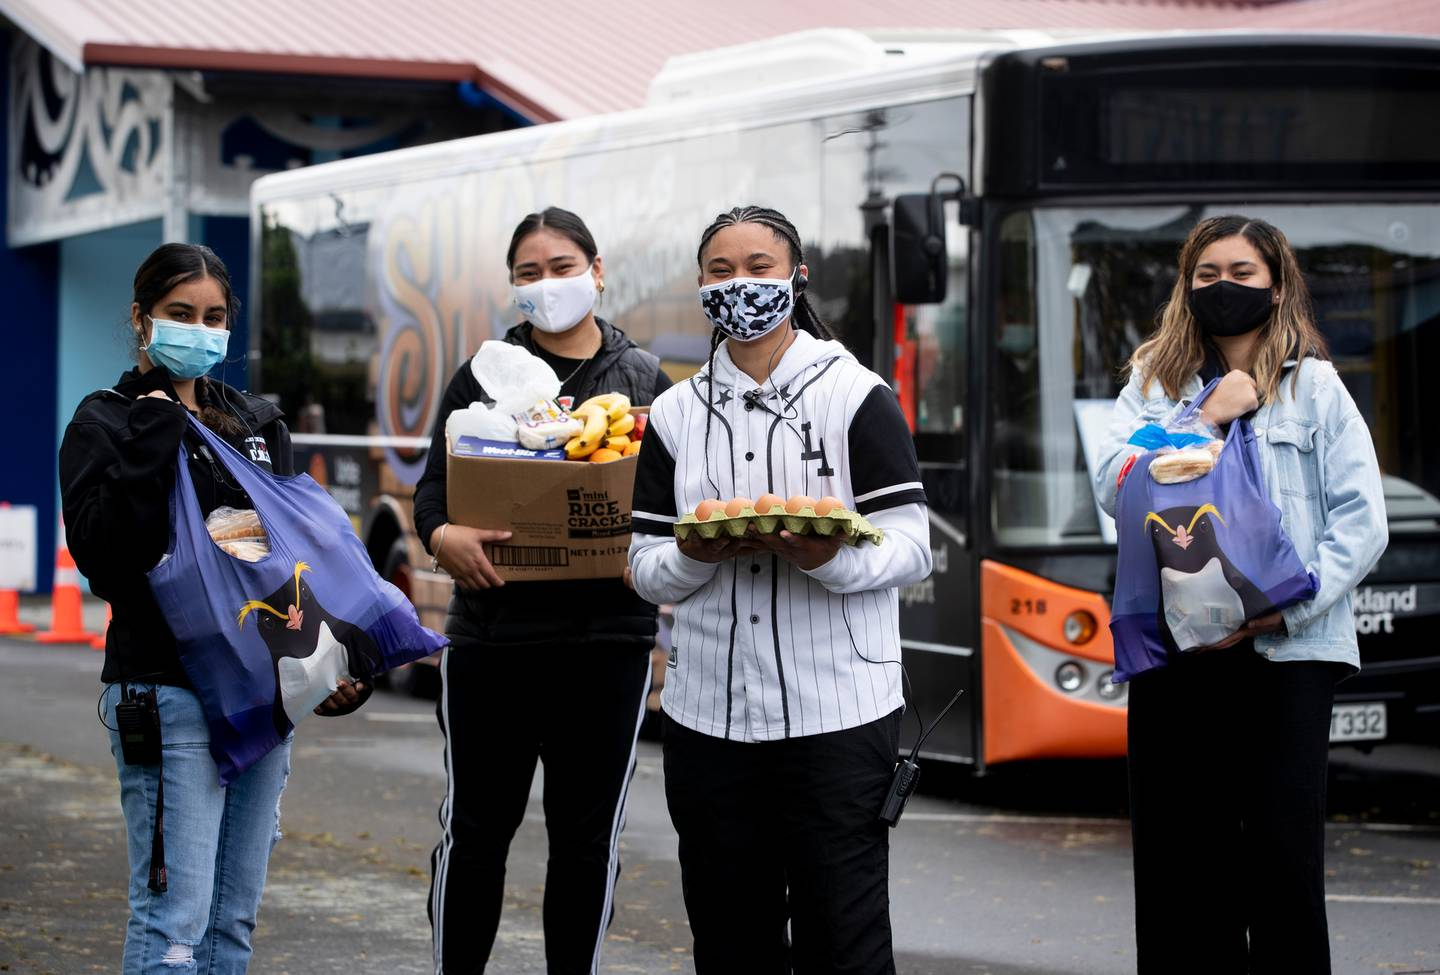 James Cook High School students along with support from Manurewa Marae have set up a Covid-19 vaccination centre. They are also giving out food parcels for their local community. Photo / Dean Purchell